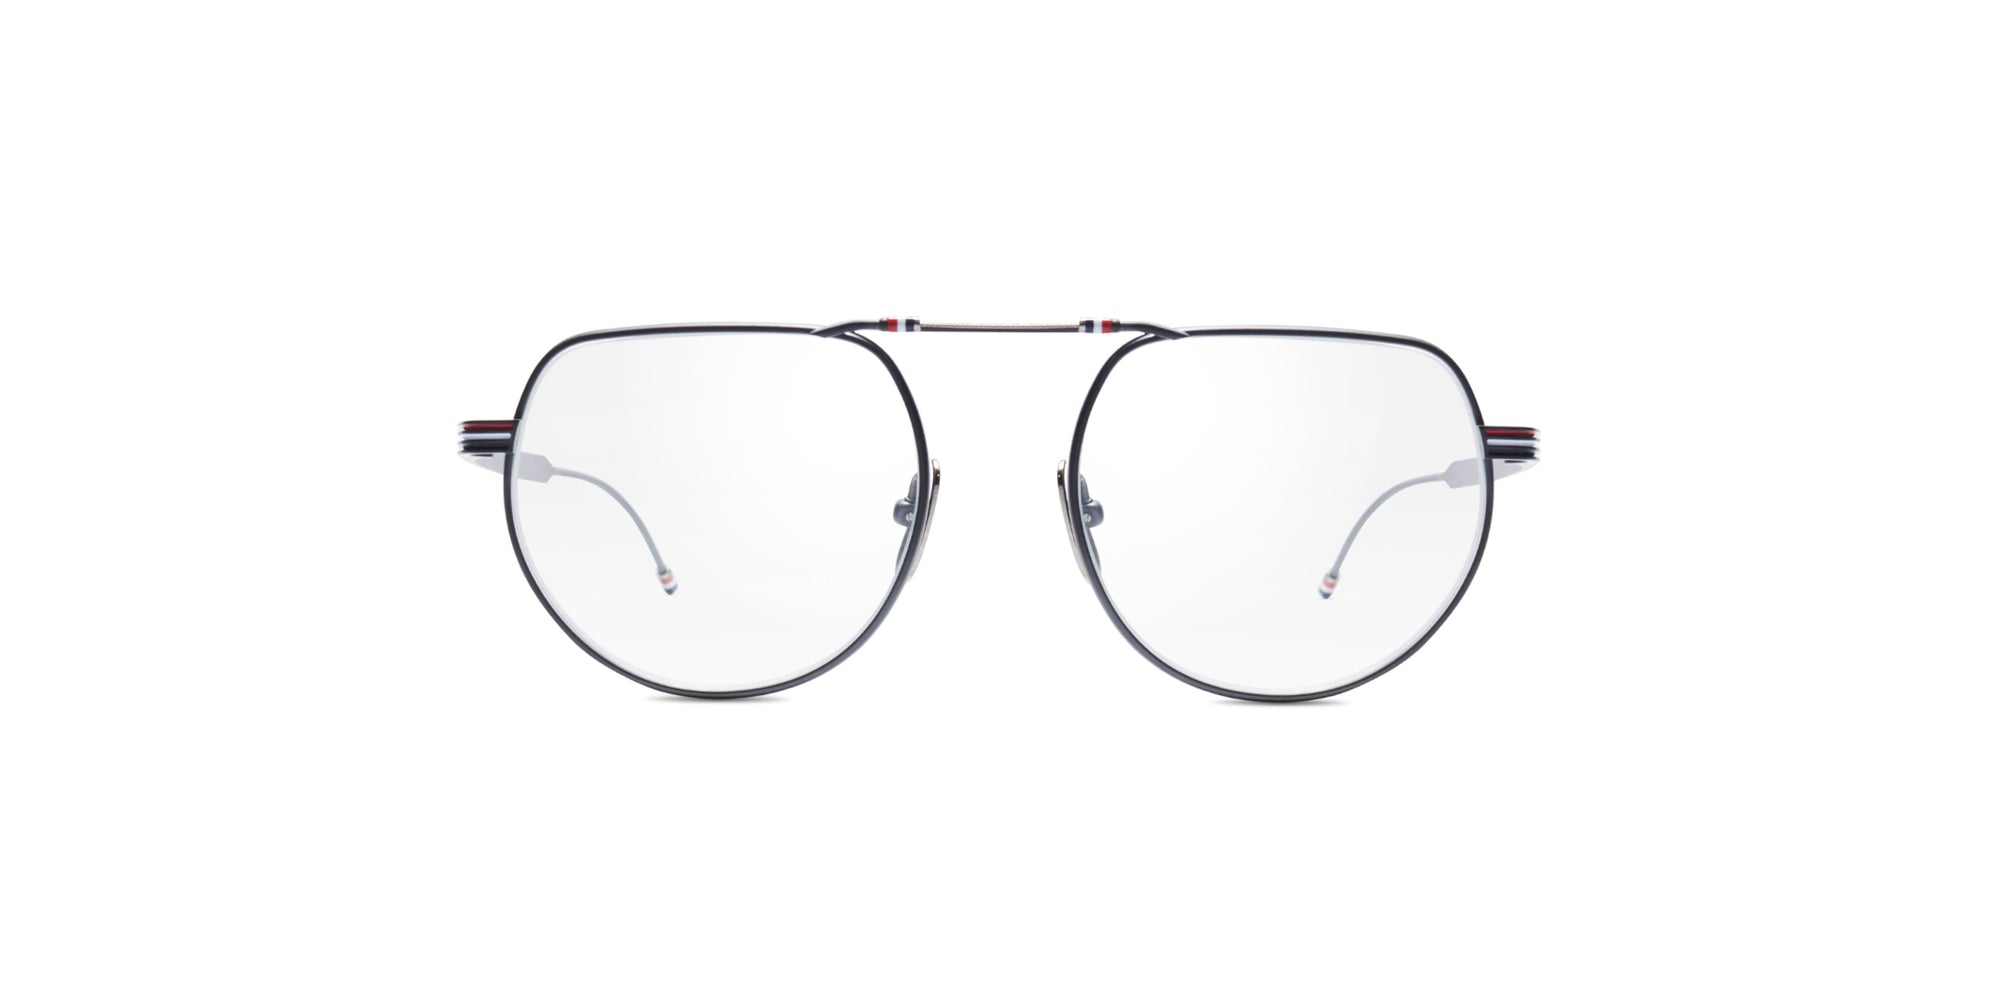 Thom Browne - TB-918-A Black Round Men Eyeglasses - 51mm